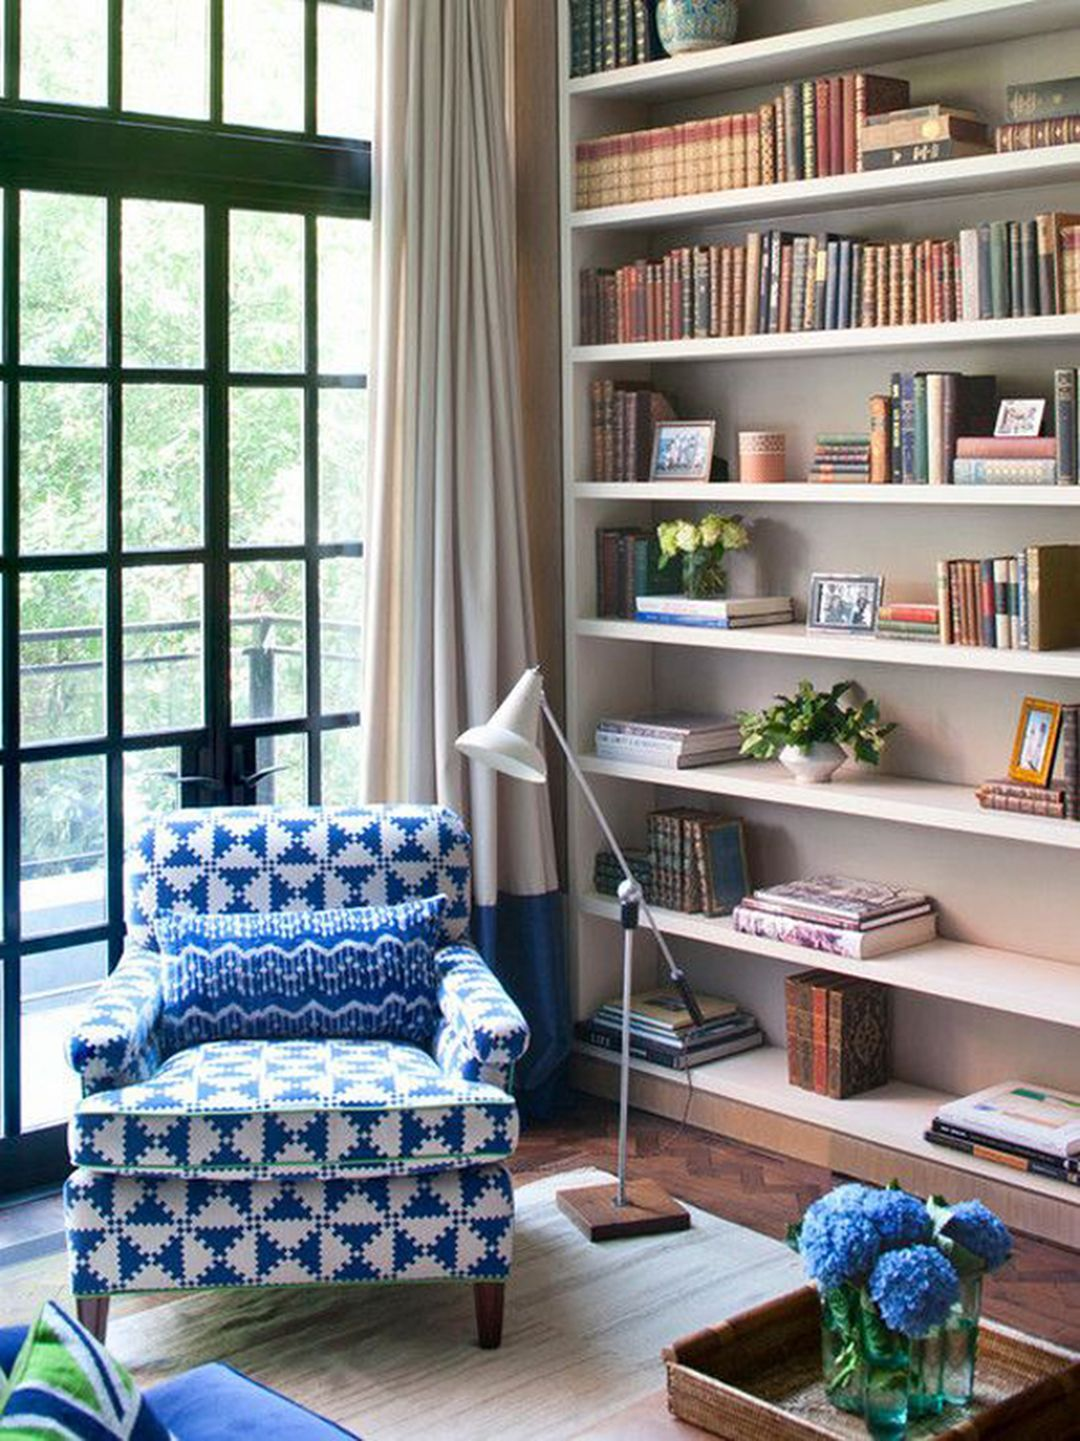 Top 20 Small Home Library Design Ideas For Inspiration Cozy